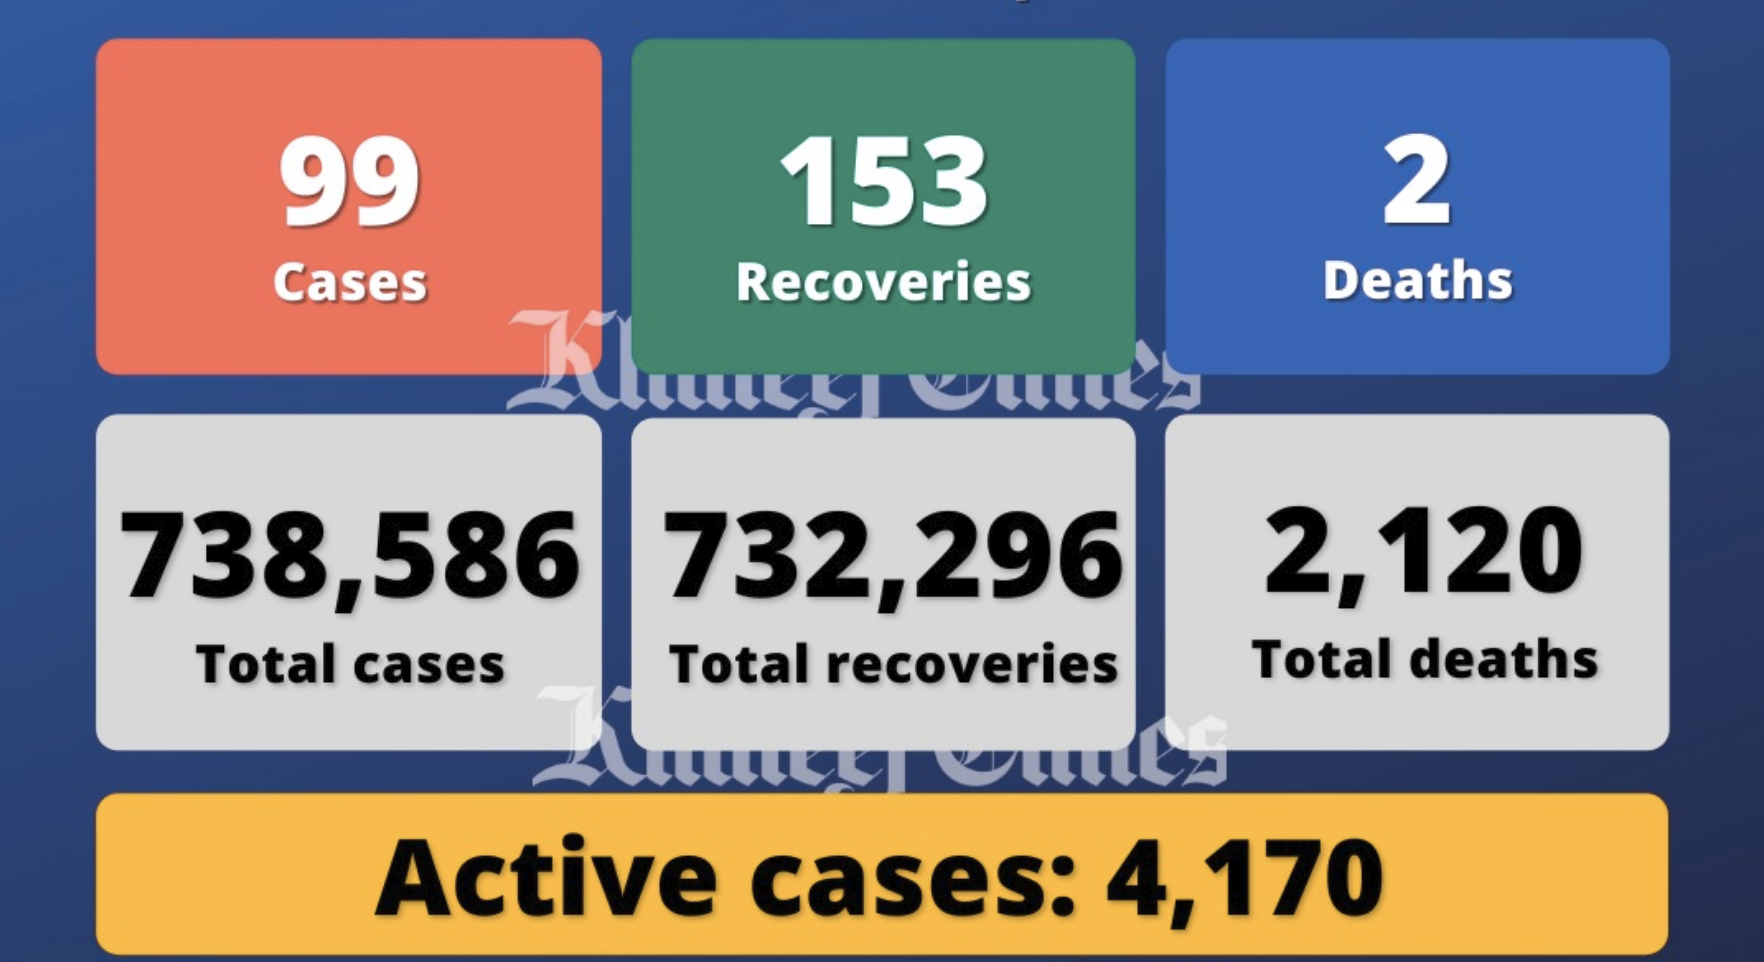 UAE reports 99 Covid-19 cases, 153 recoveries, 2 deaths